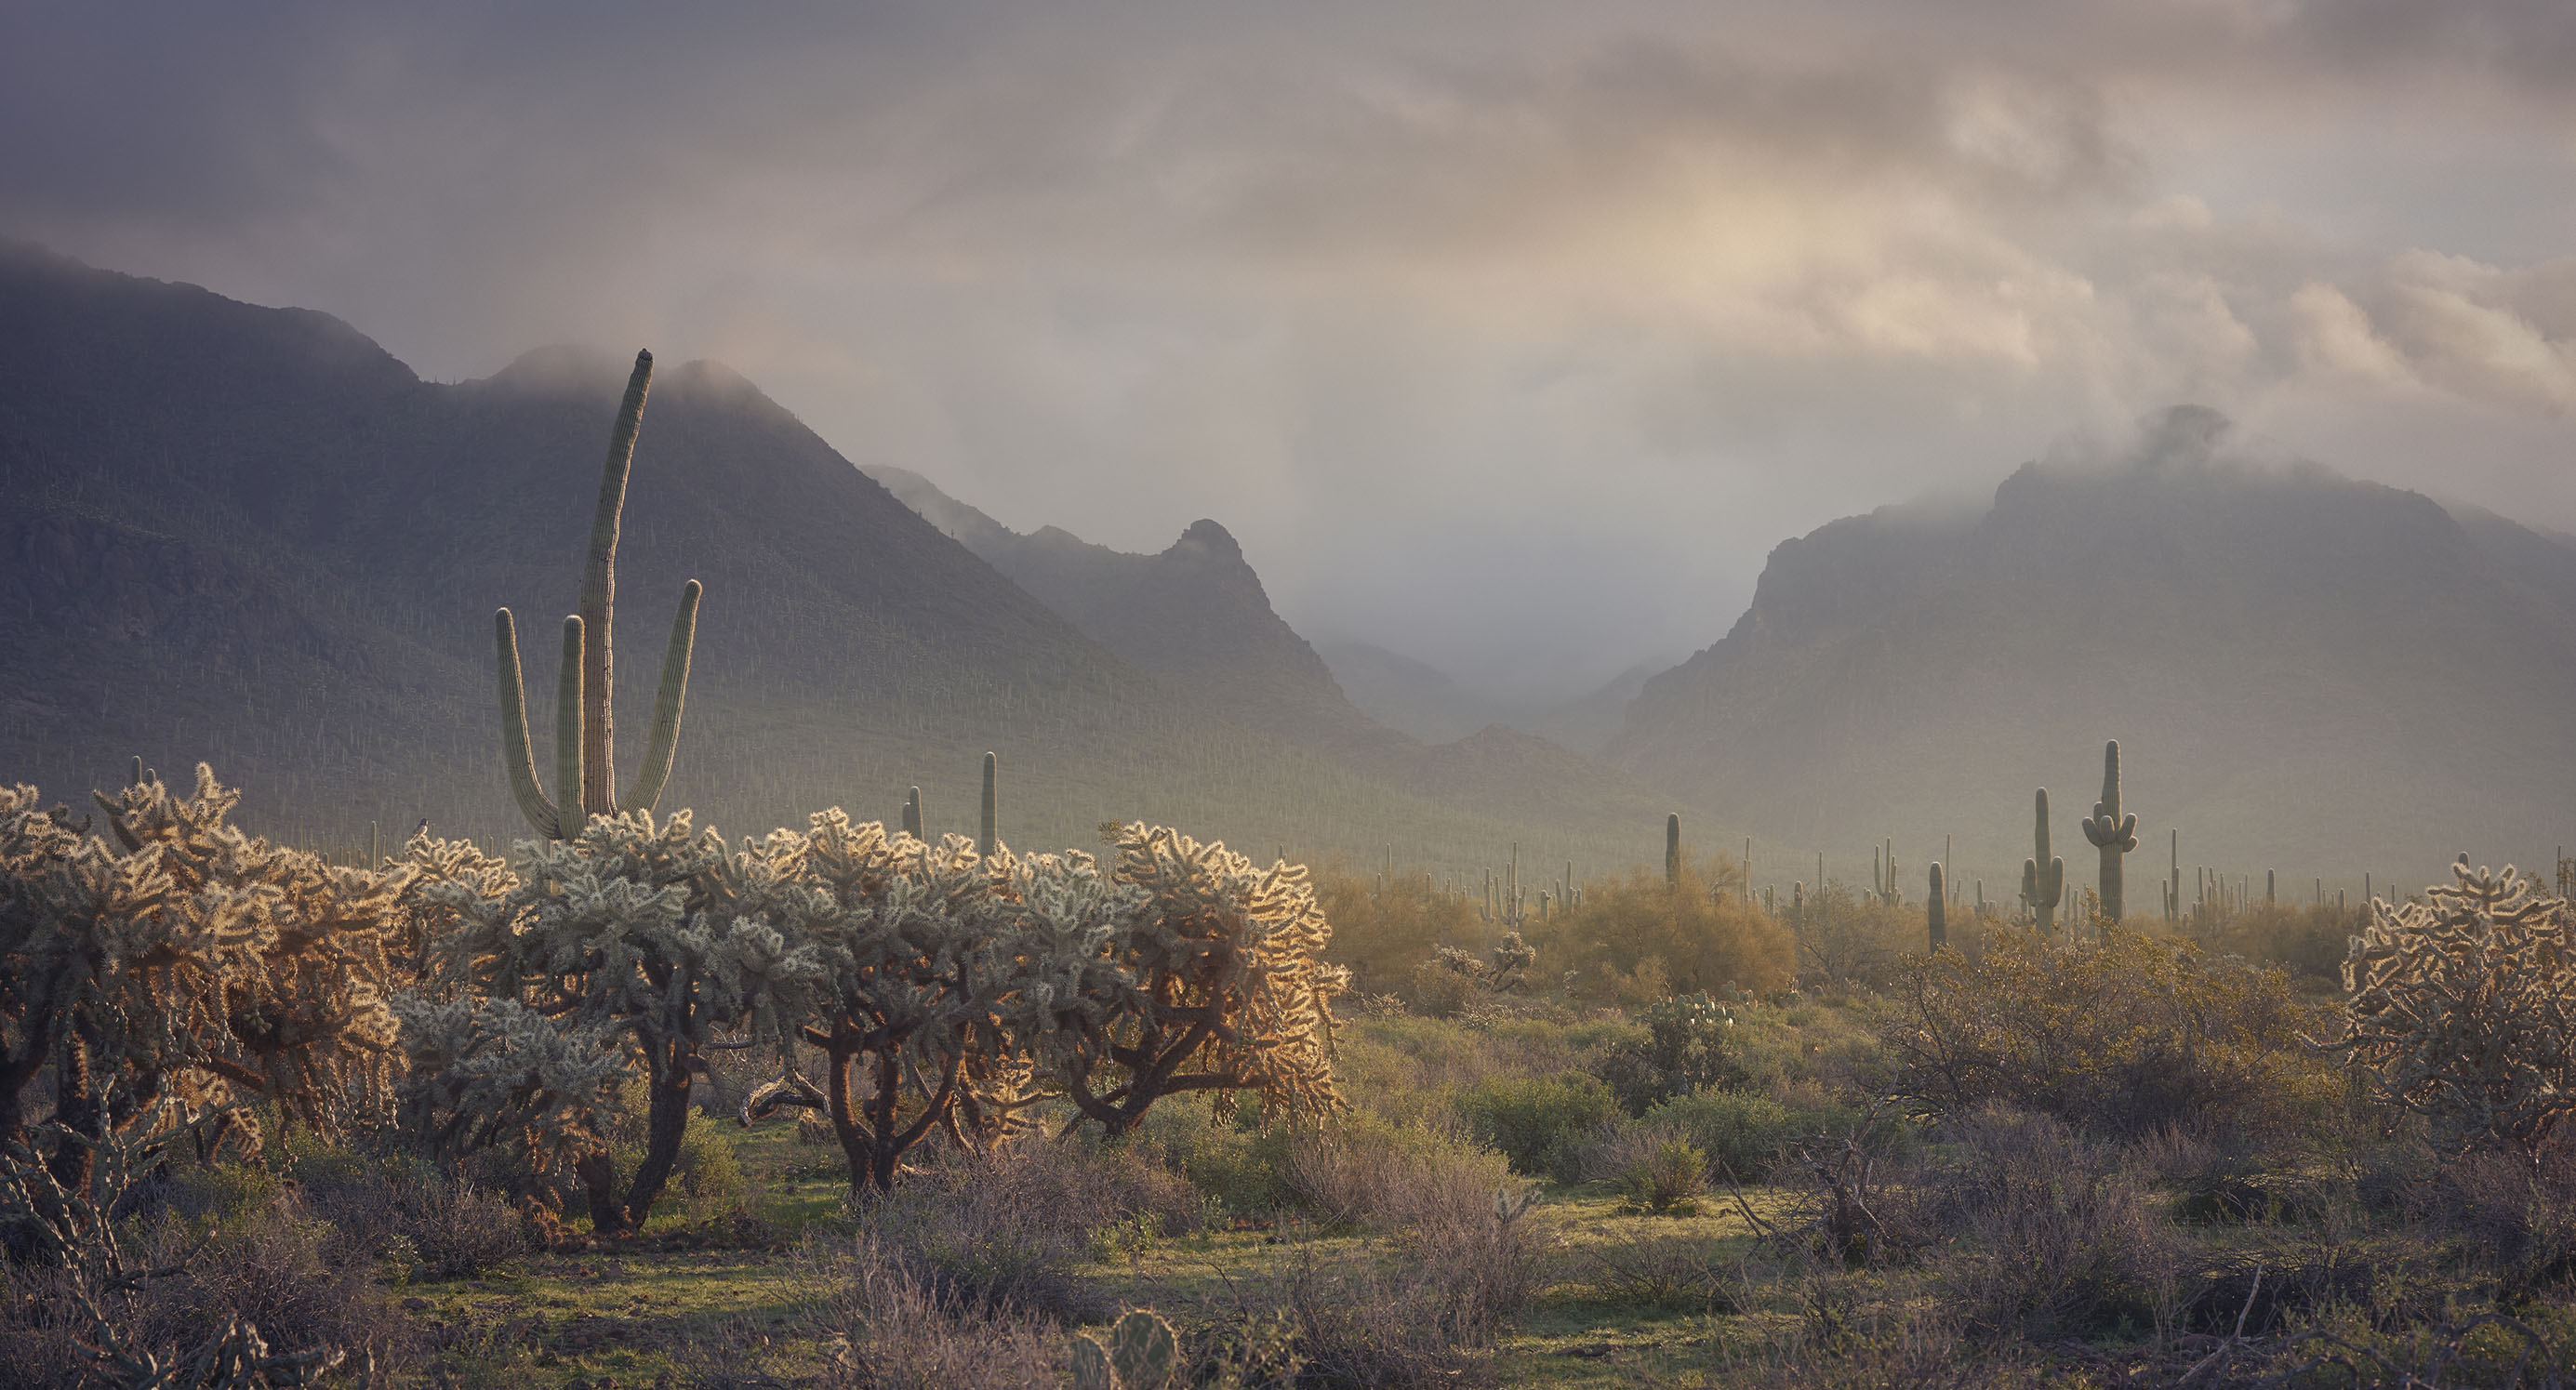 arizona landscape photography, superstition mountains, arizona landscape photographer